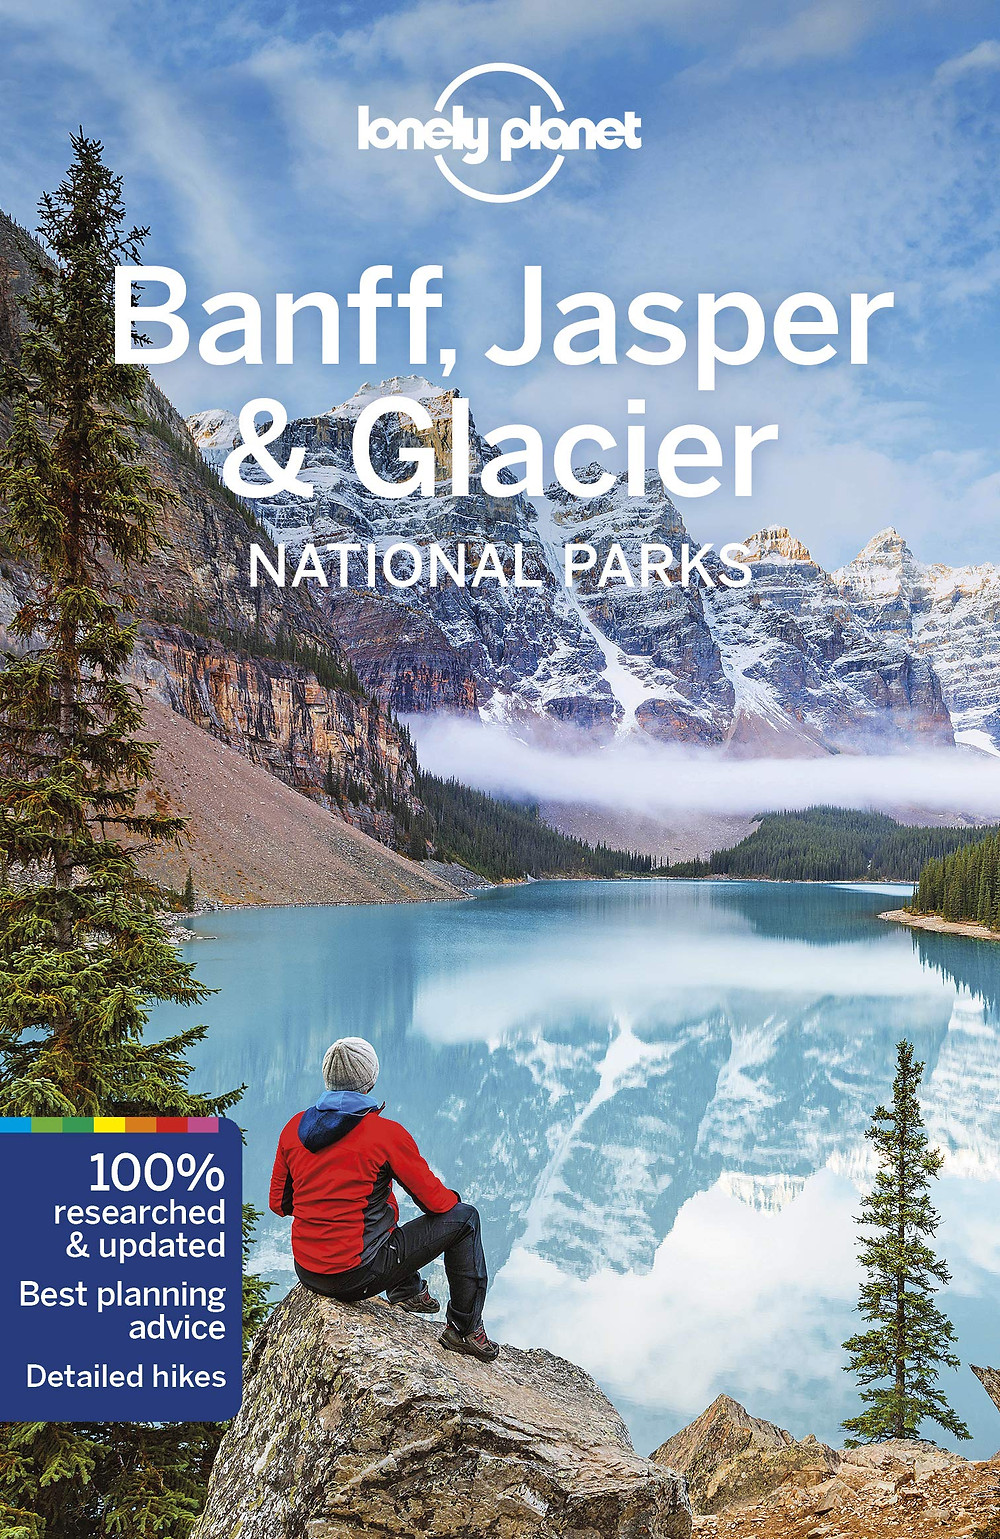 lakes in banff national parks in the canadian rockies guide